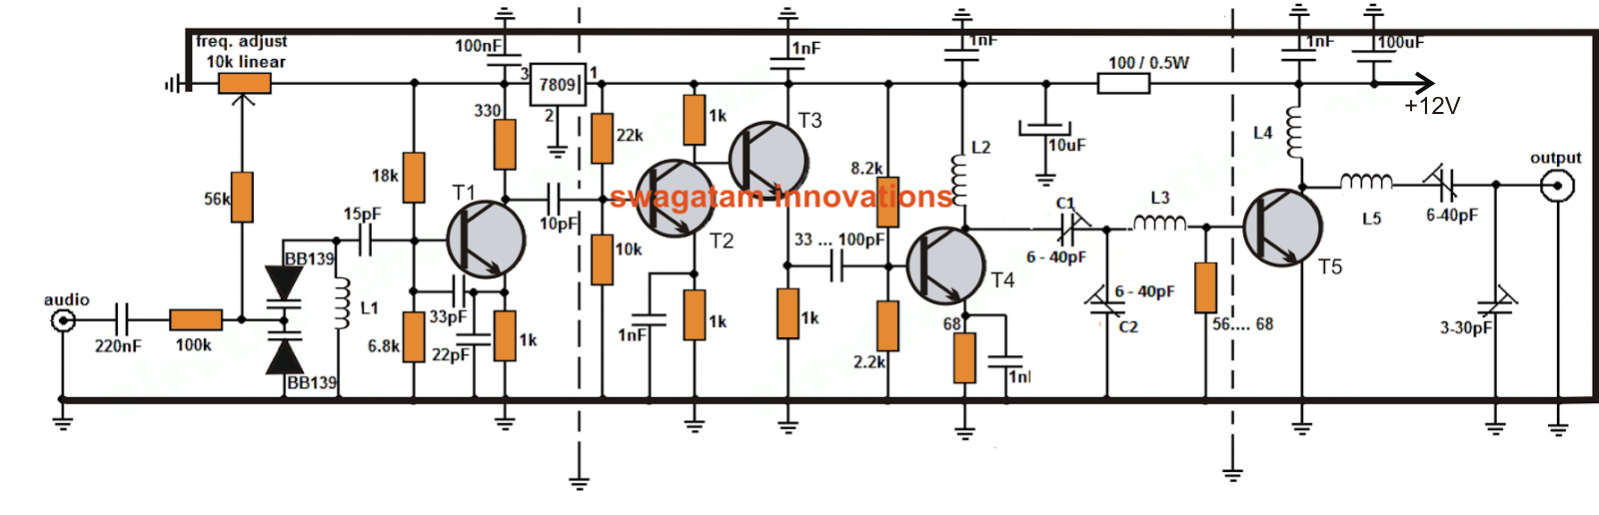 Electronic Projects Schematics Diy Circuit Diagram Online Of Ups 500w 2 5 Km Long Range Fm Transmitter The Proposed